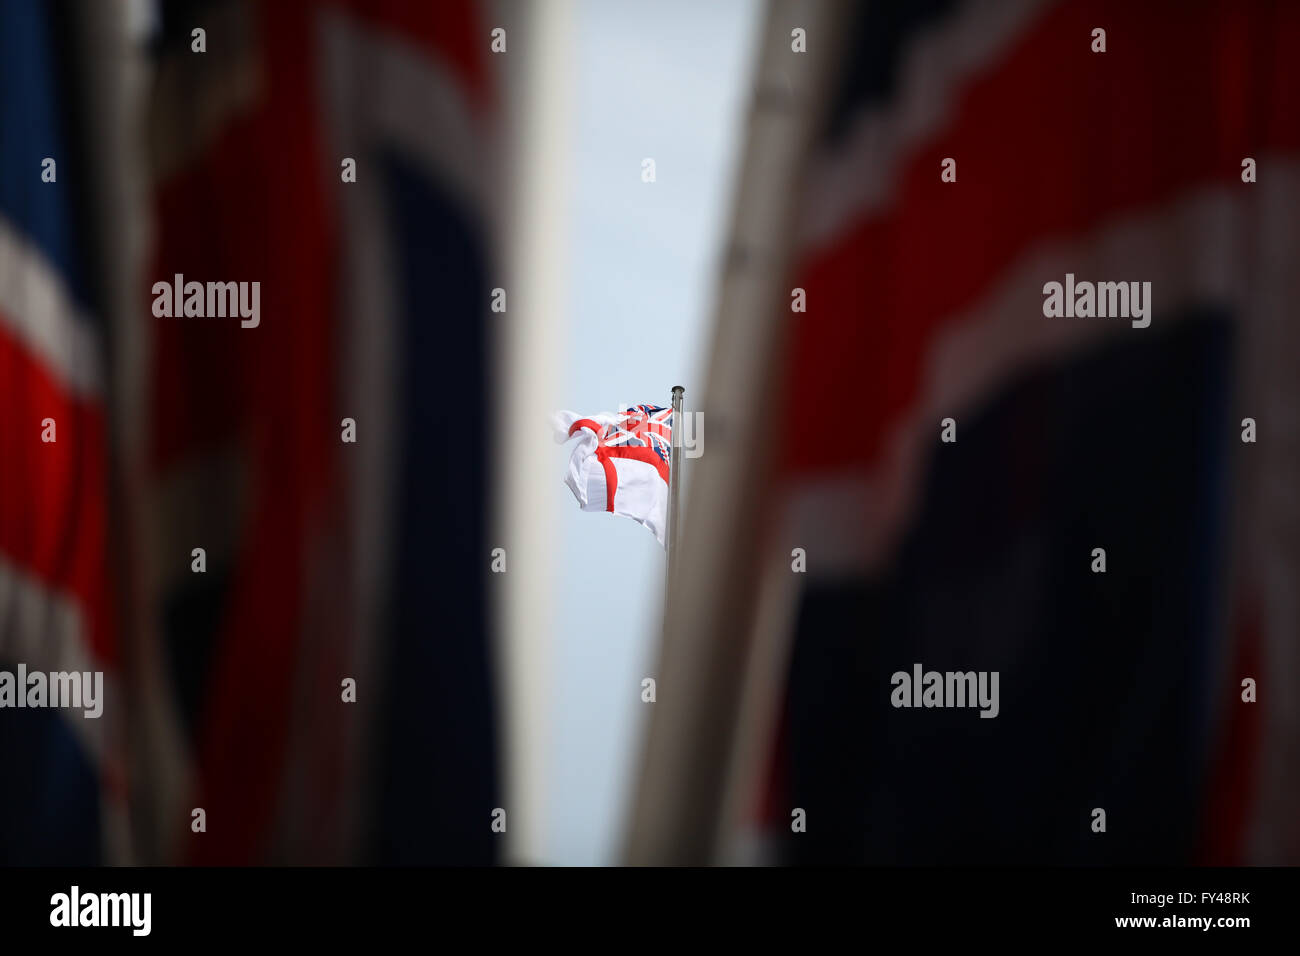 The Mall, London, 21 April 2016 - Flags in the Mall to celebrate the Queen's 90th Birthday Credit:  Dinendra - Stock Image